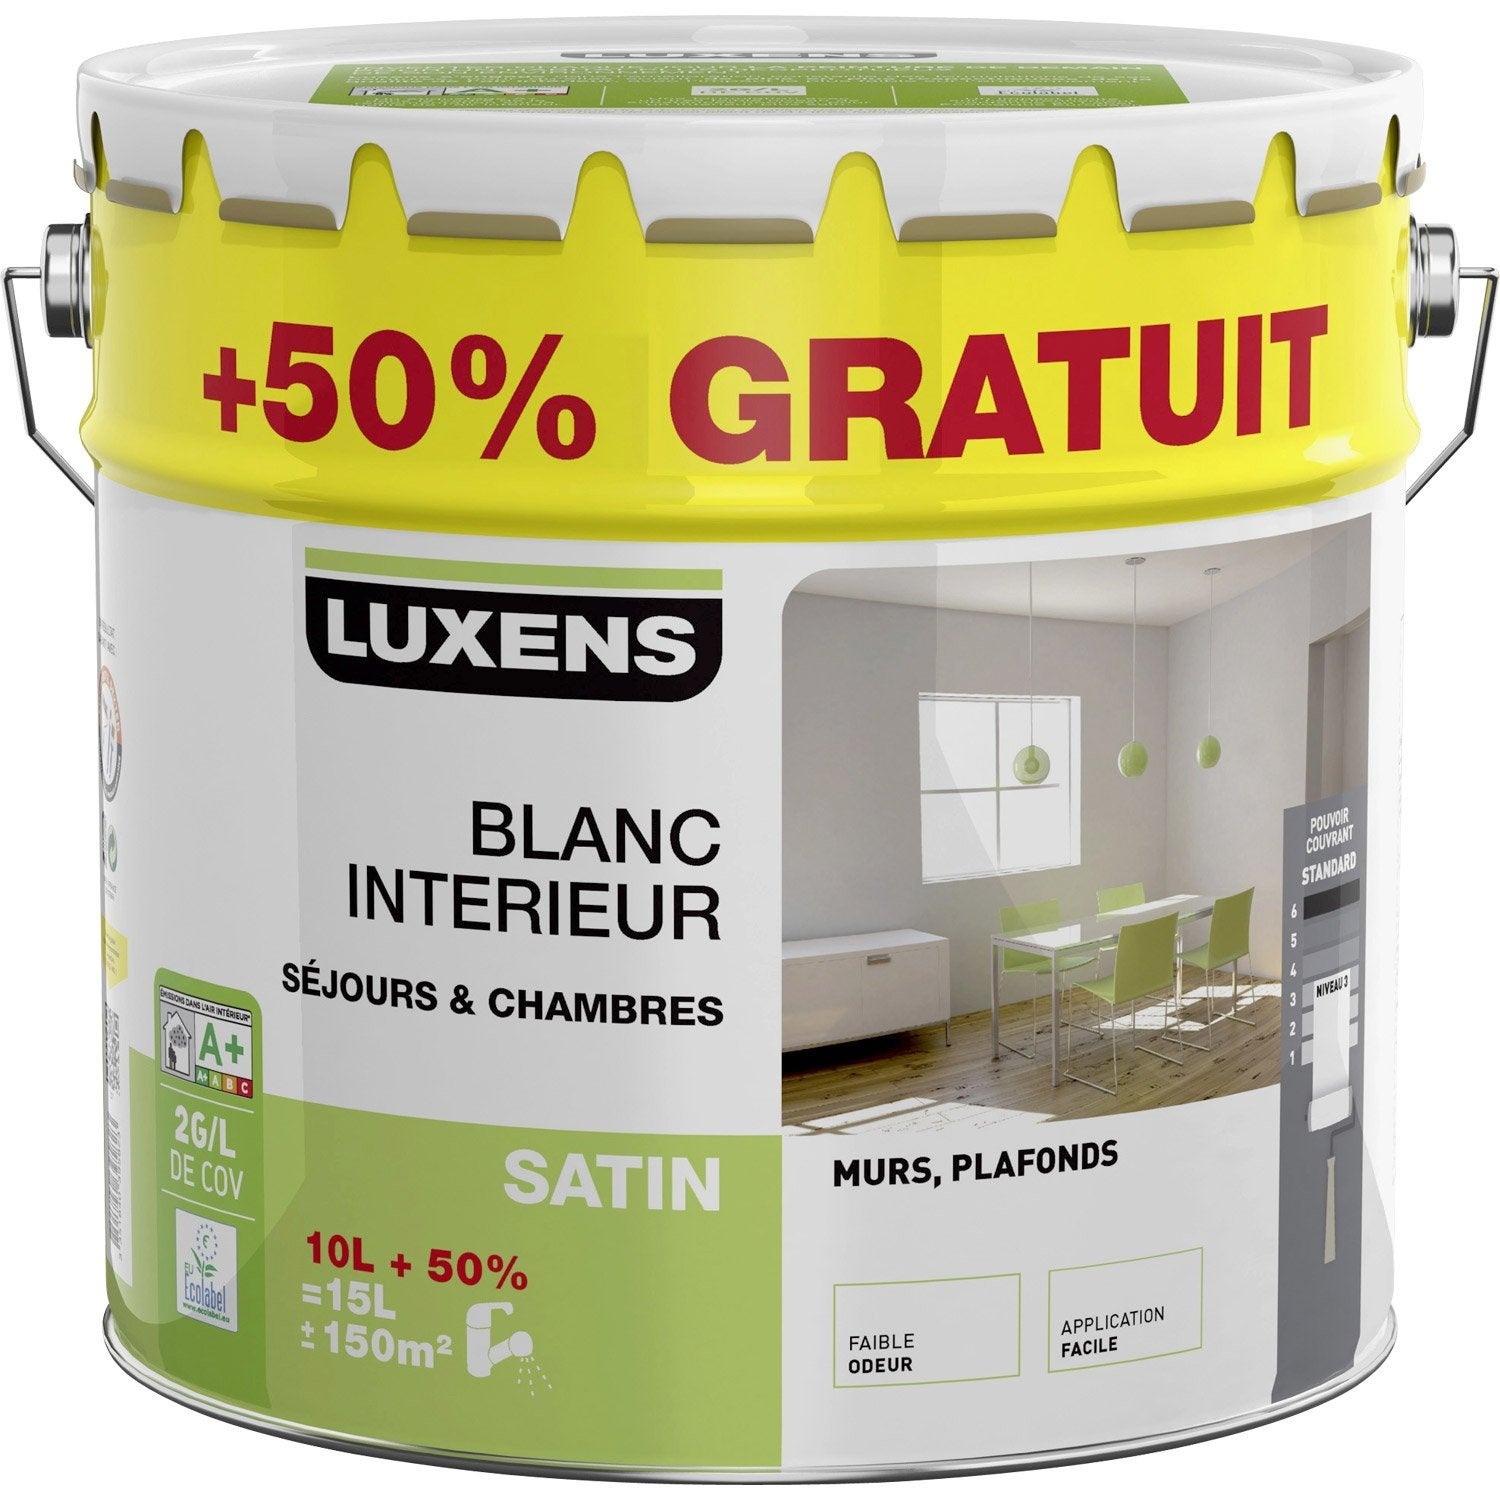 peinture murs et plafonds luxens blanc satin 10l 50 gratuit leroy merlin. Black Bedroom Furniture Sets. Home Design Ideas